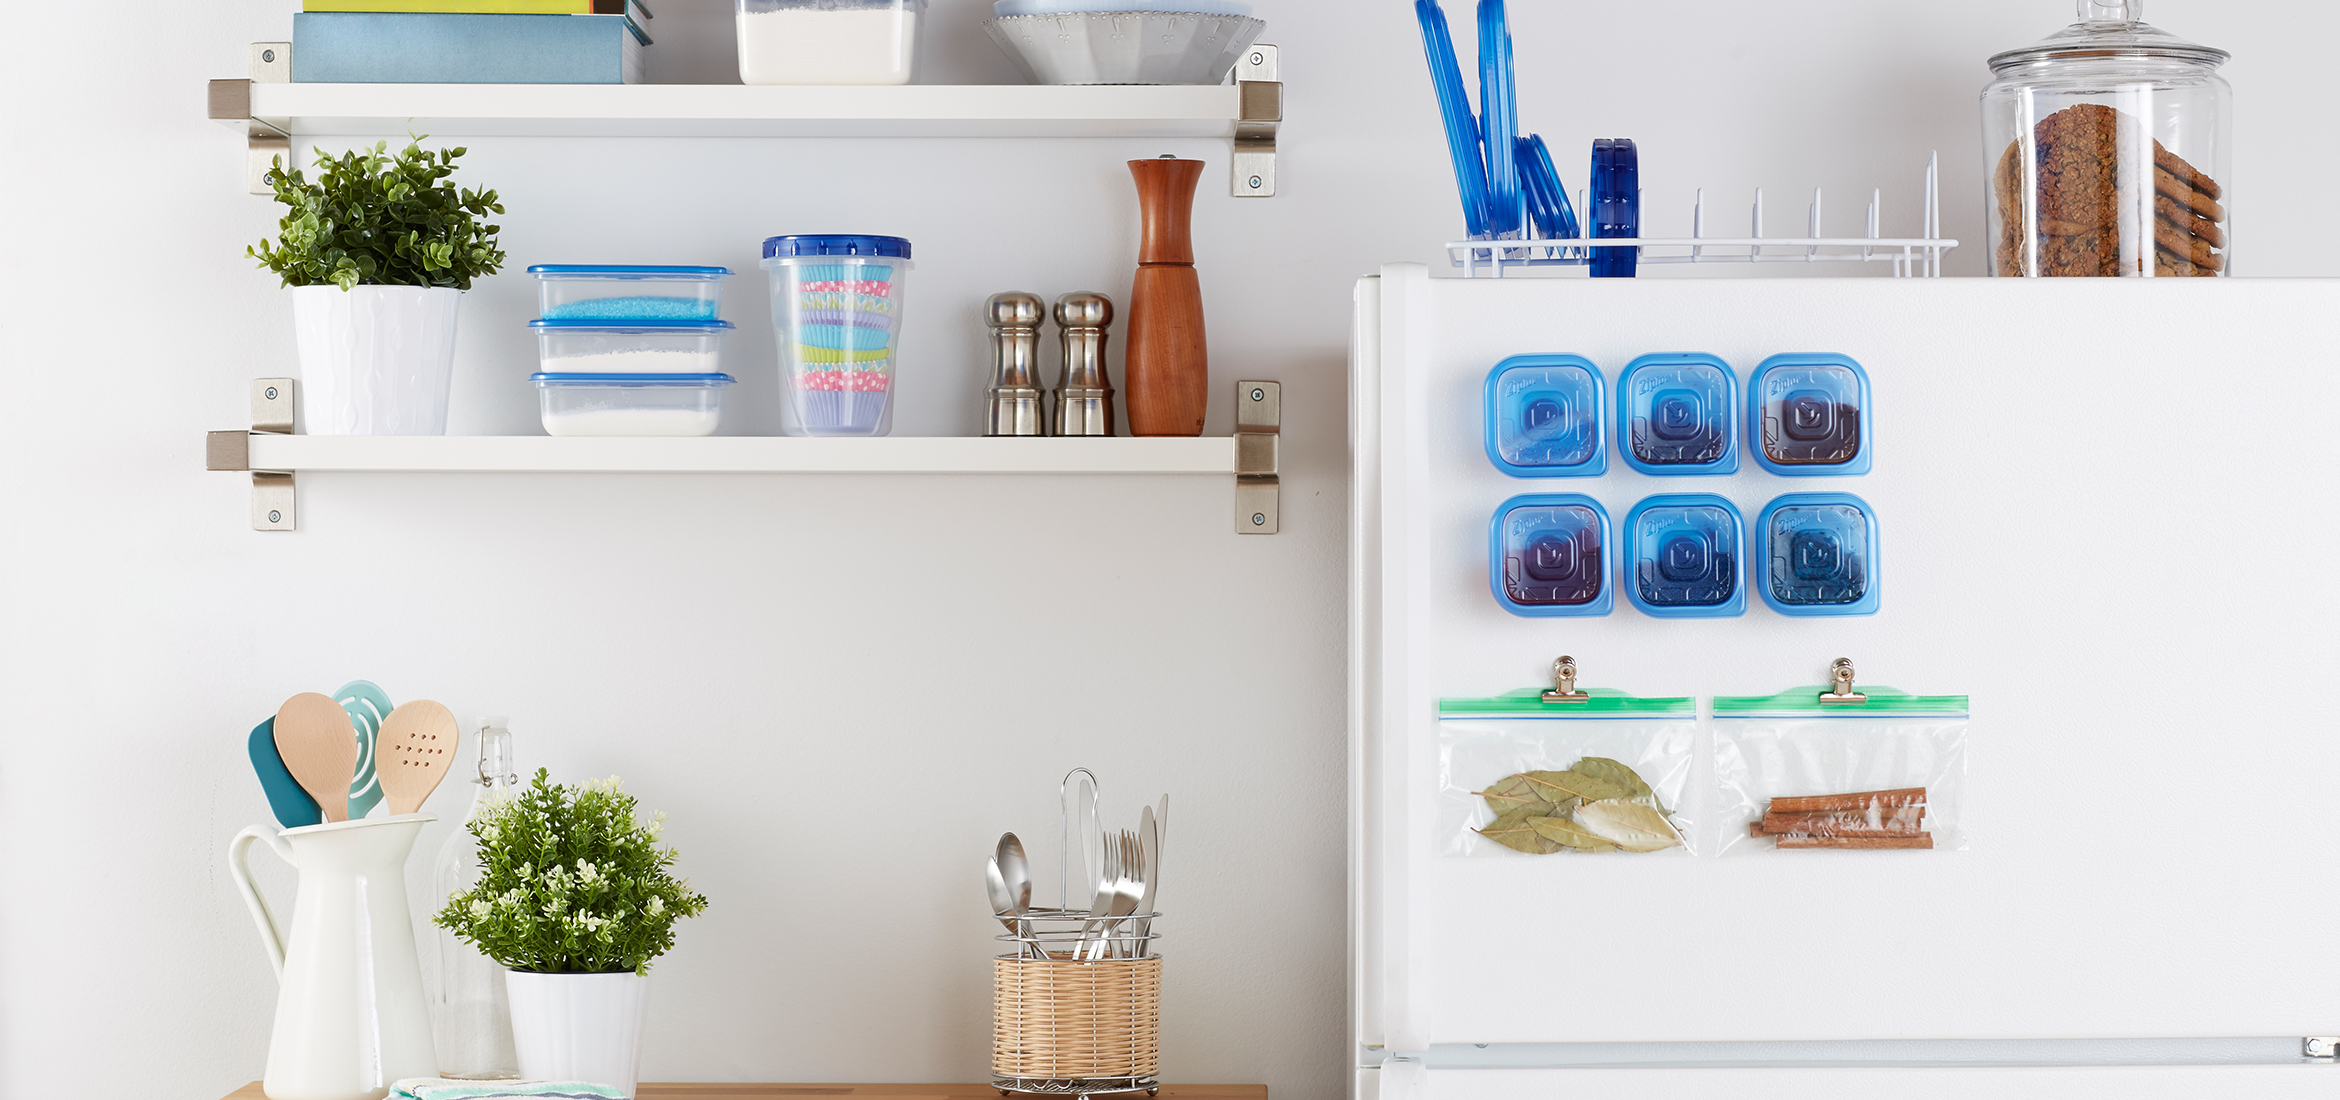 3 Tips for Simple Kitchen Storage